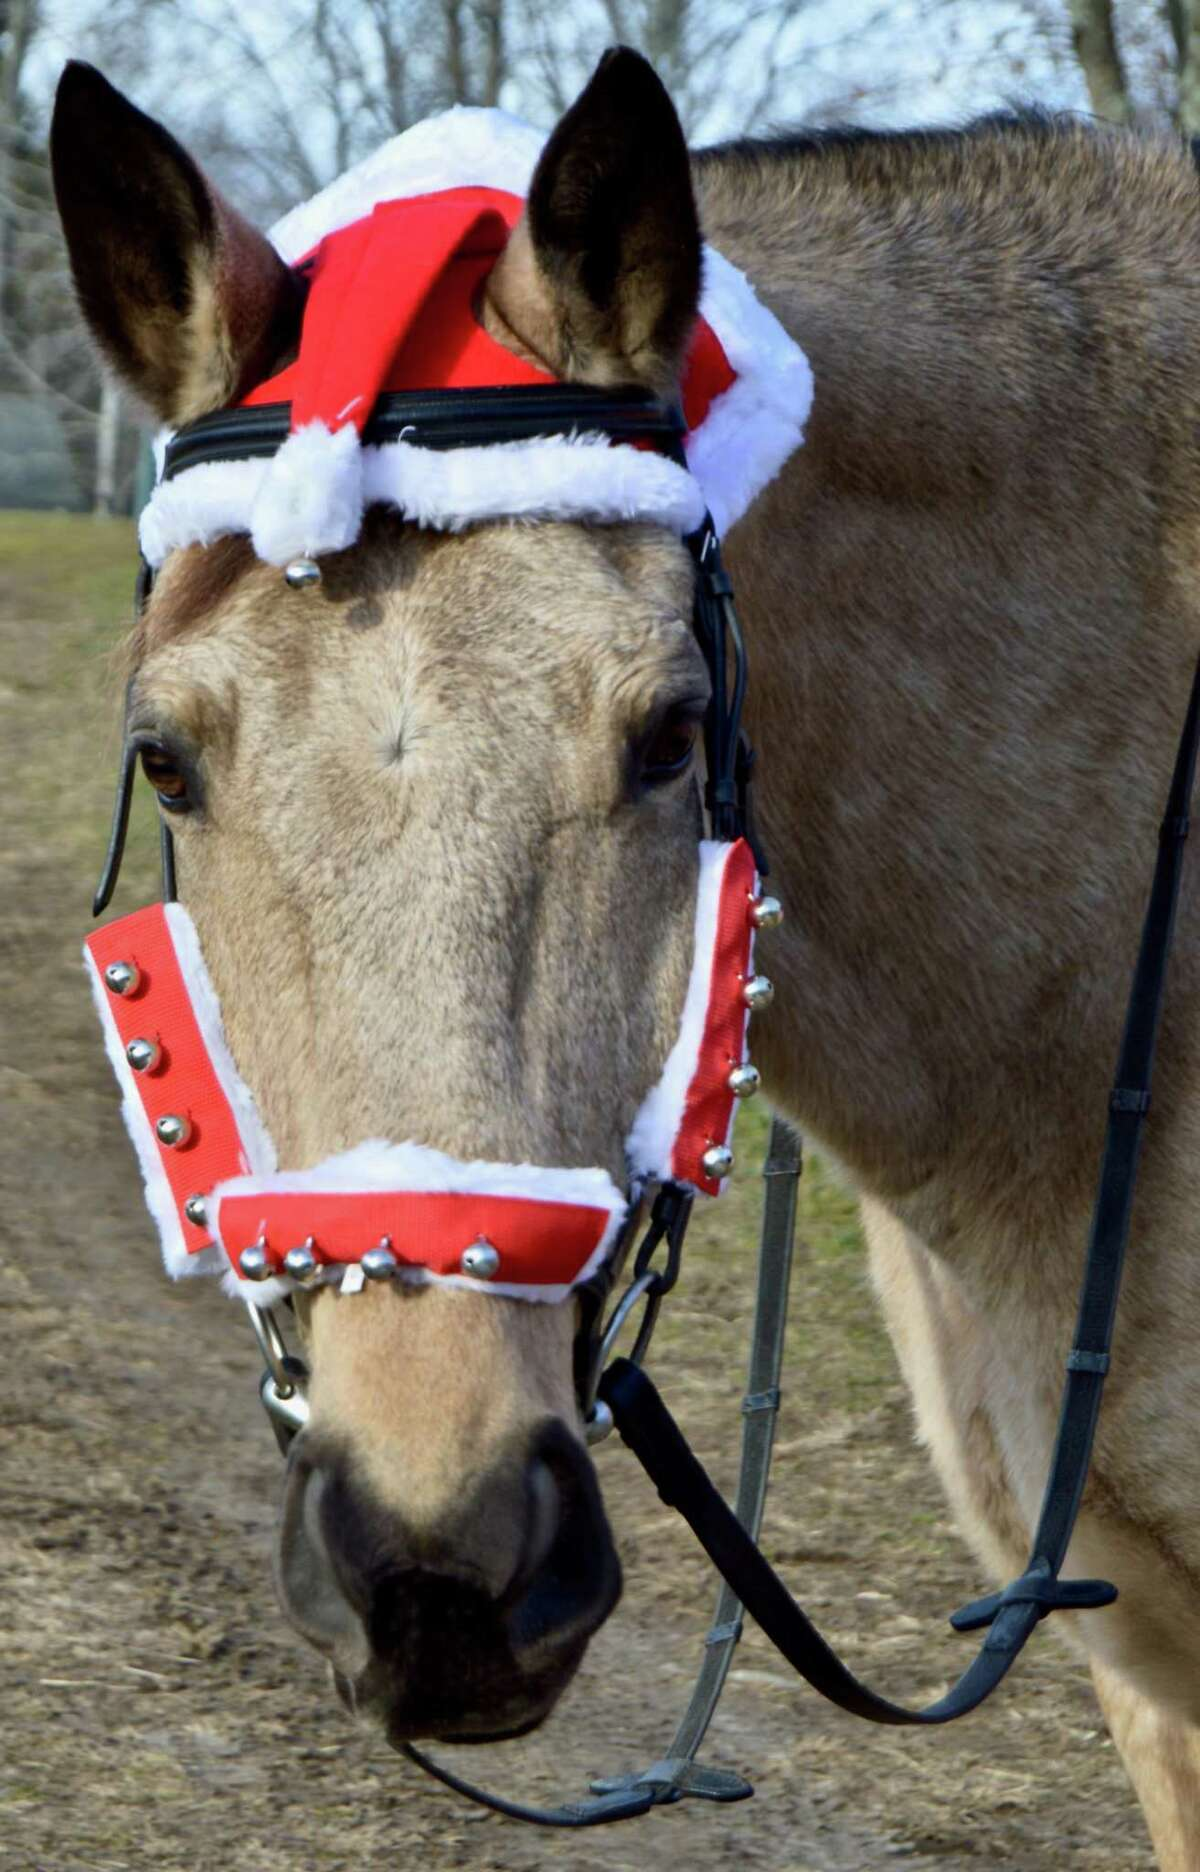 Reggie, a resident horse at H.O.R.S.E. of Connecticut, is dressed up and ready for the farm's Christmas Open House Dec. 12.